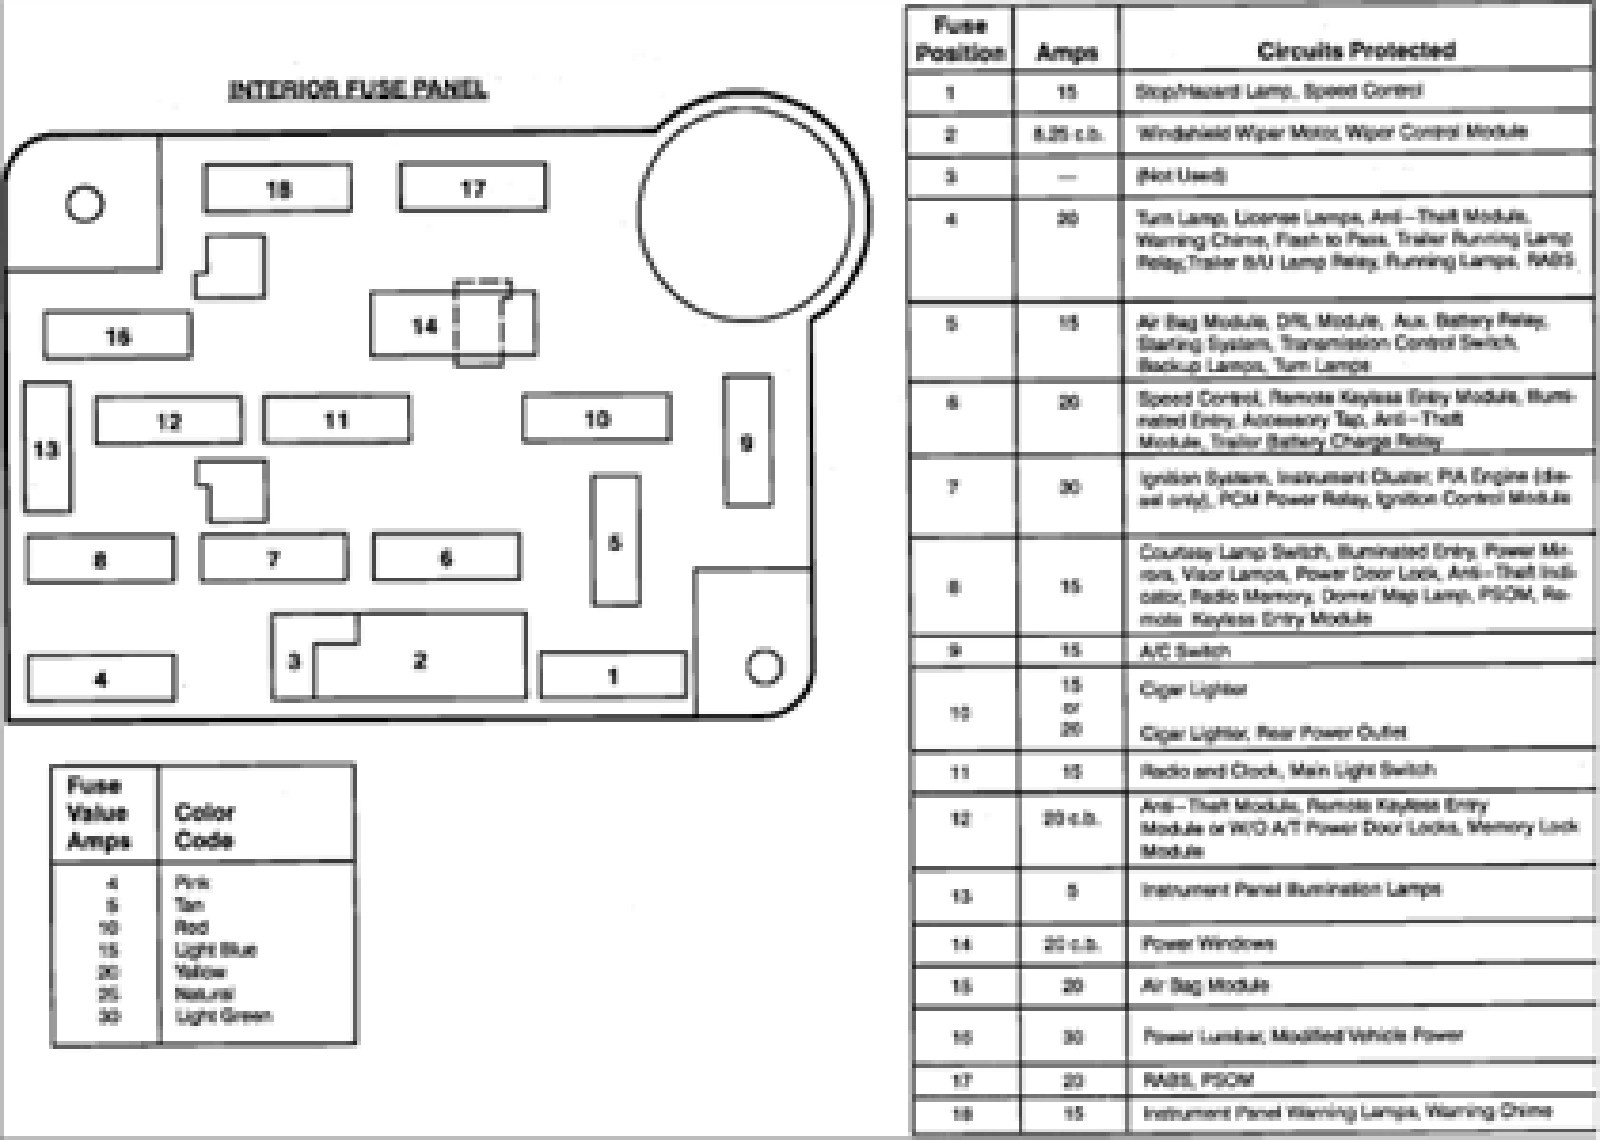 hight resolution of 1998 e150 fuse diagram wiring diagram detailed electrical panel 1998 e150 fuse box